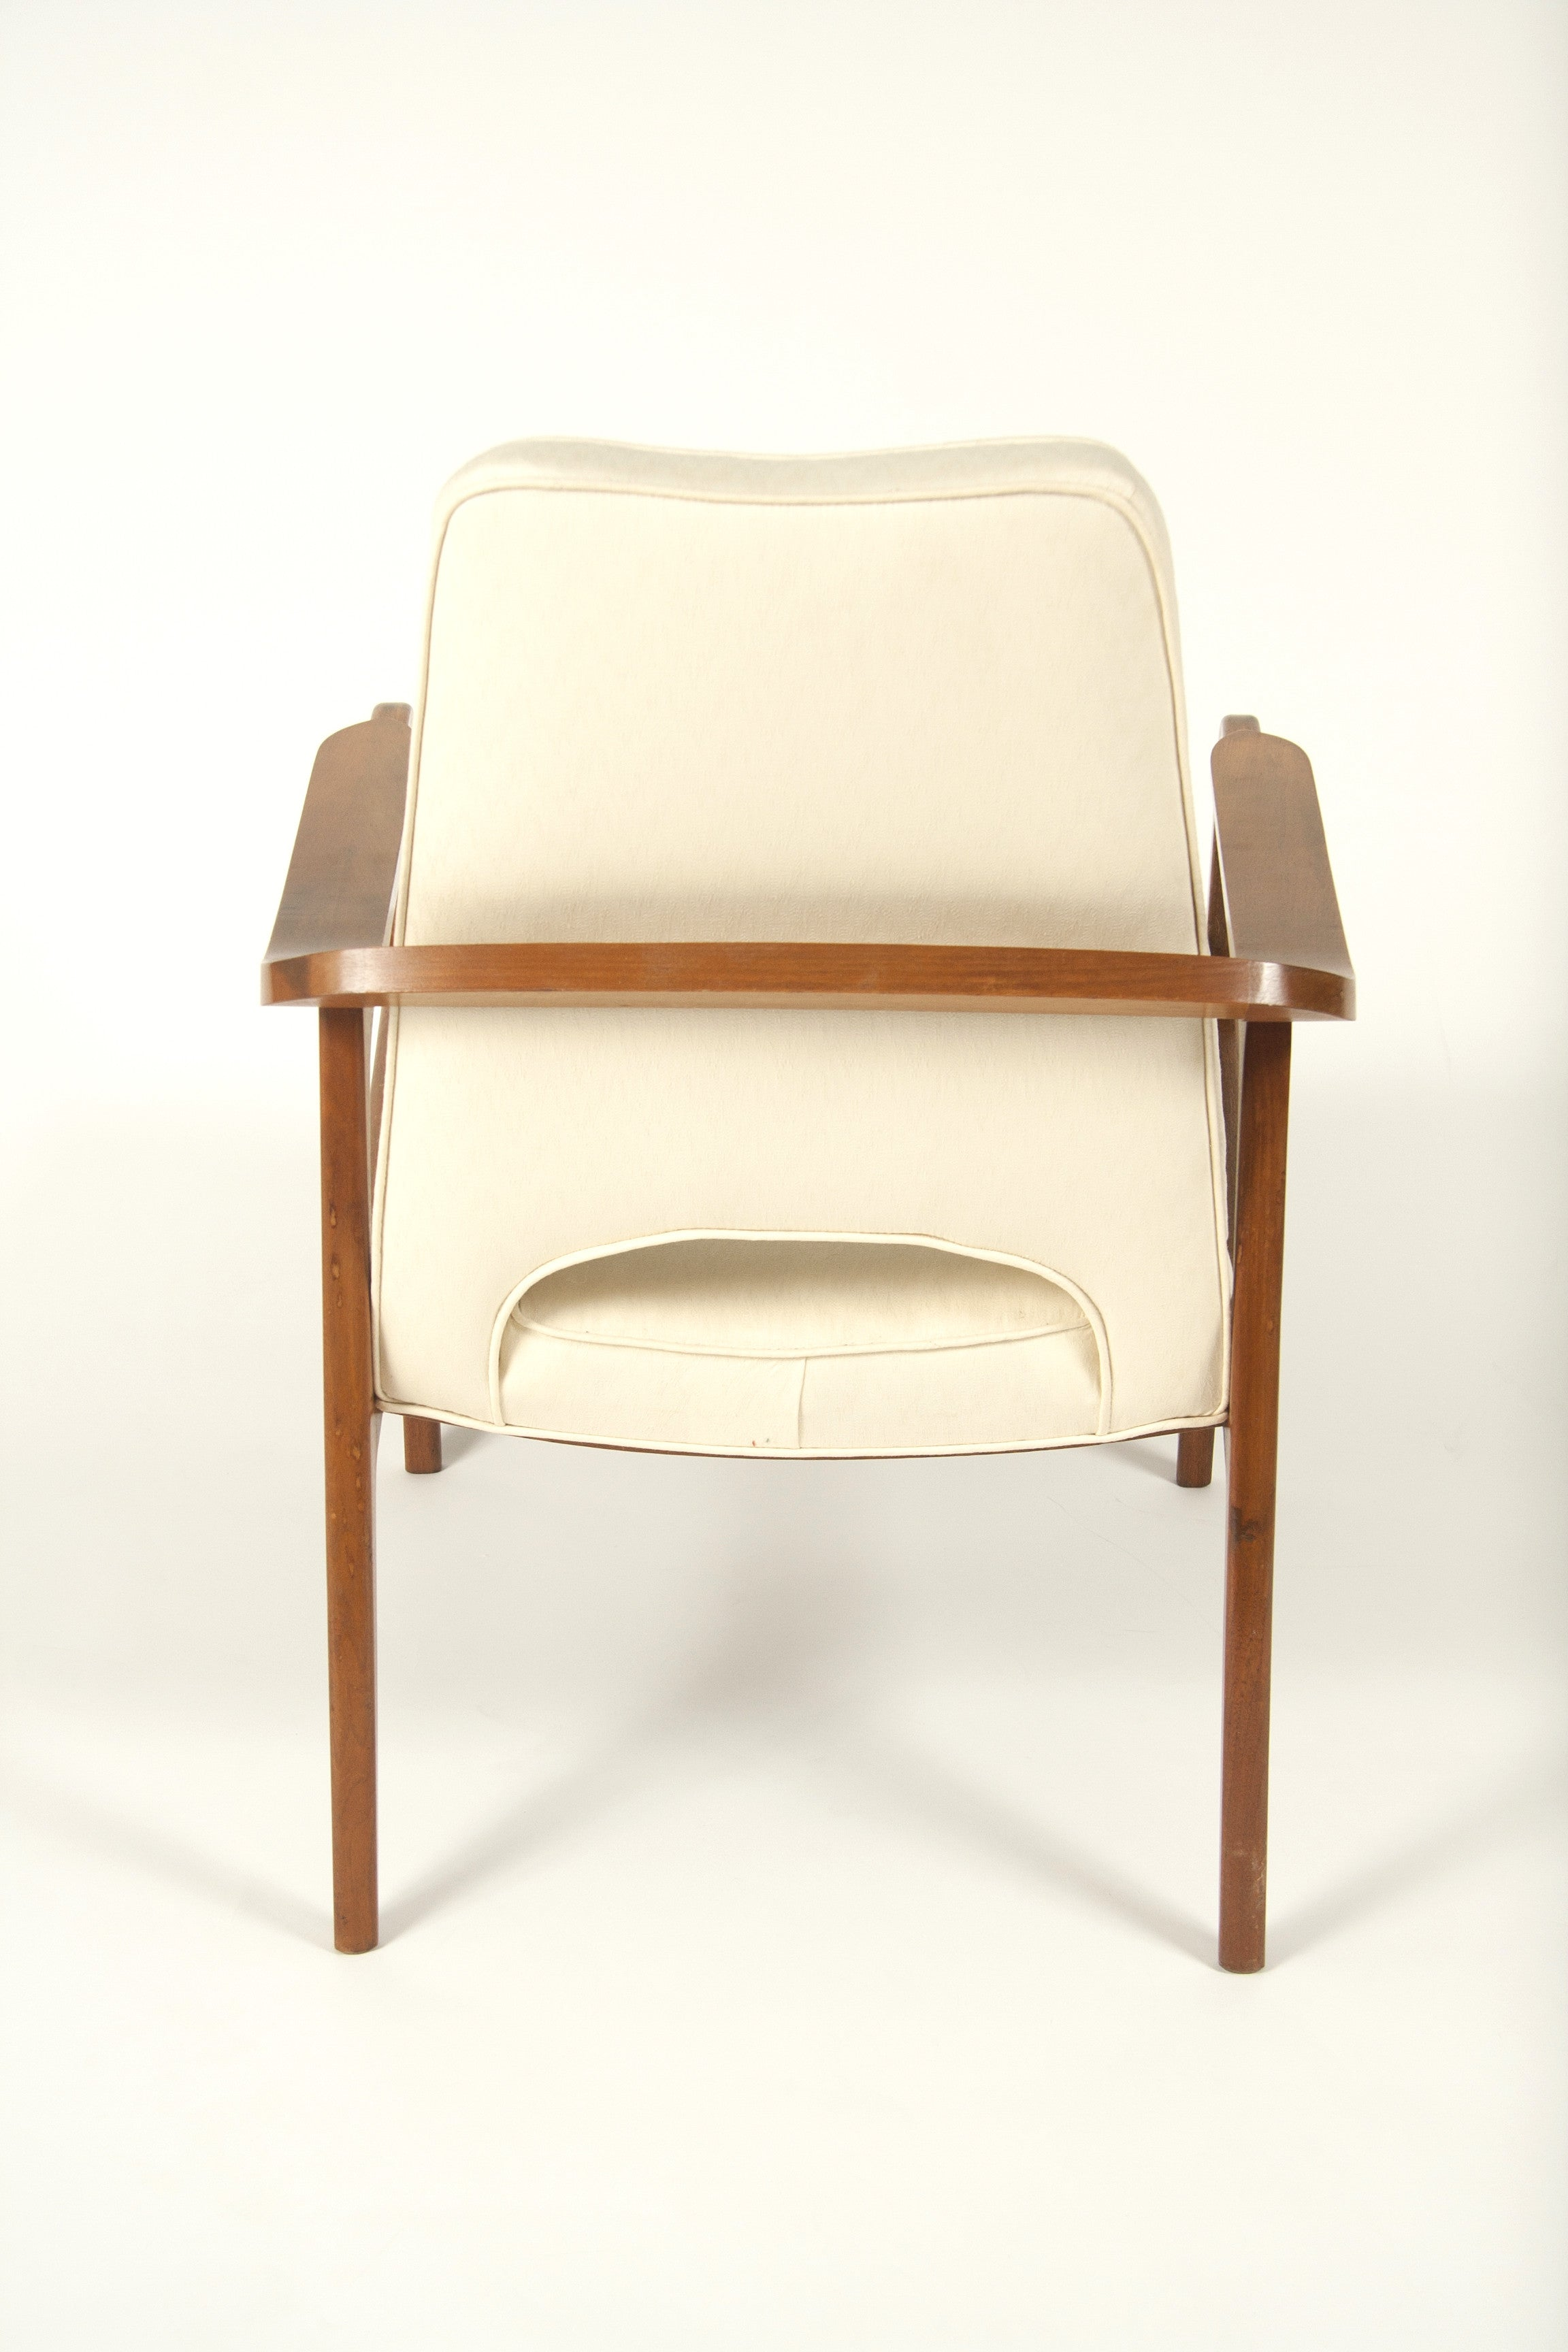 A Pair of Upholstered Arm Chairs Designed by Sigvard Bernadotte